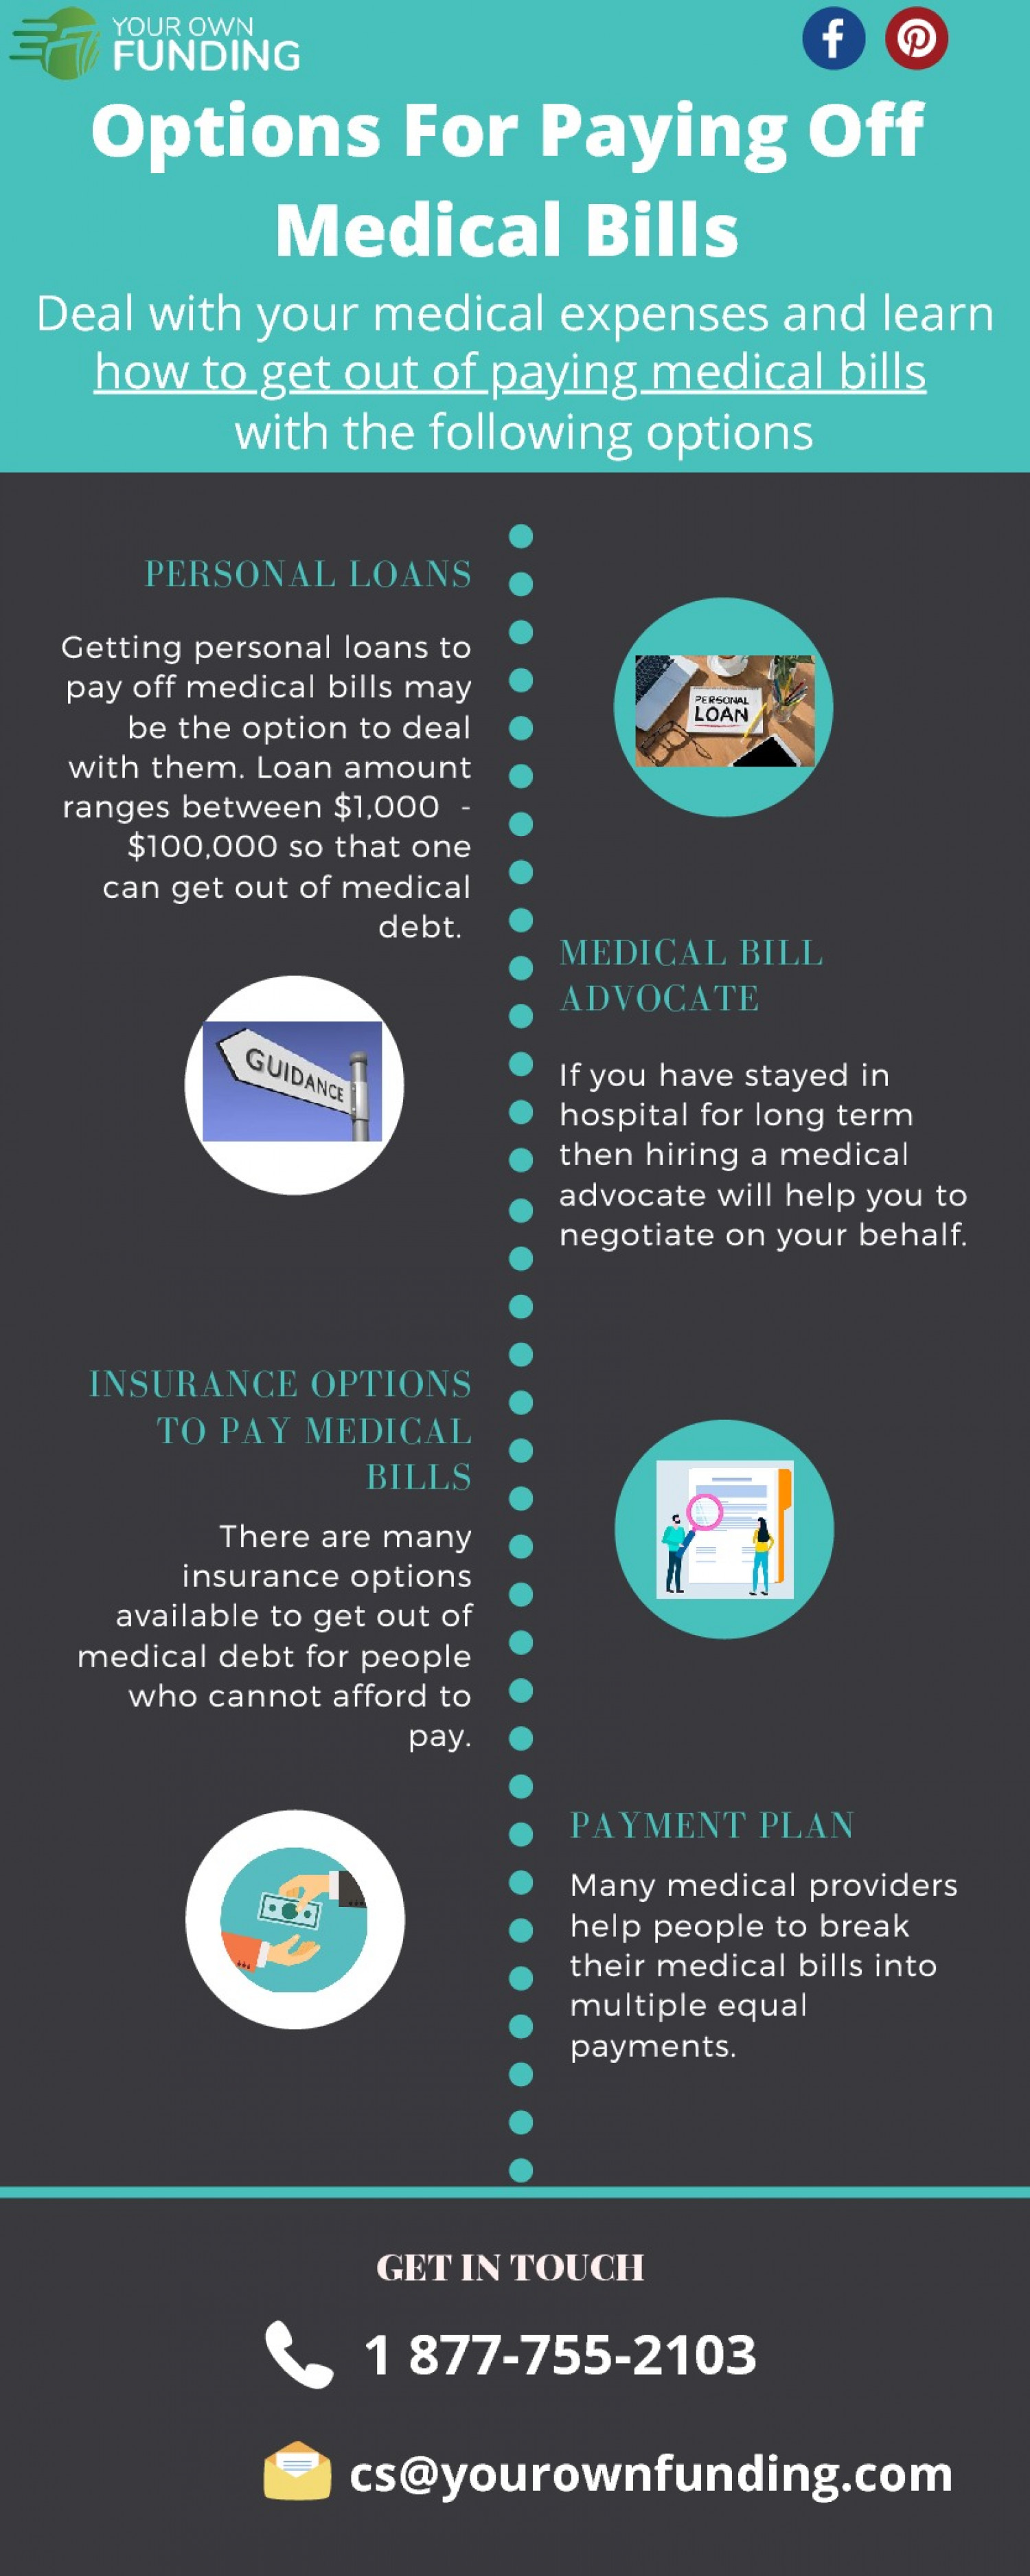 Get Help For Paying Off Medical Bills Infographic